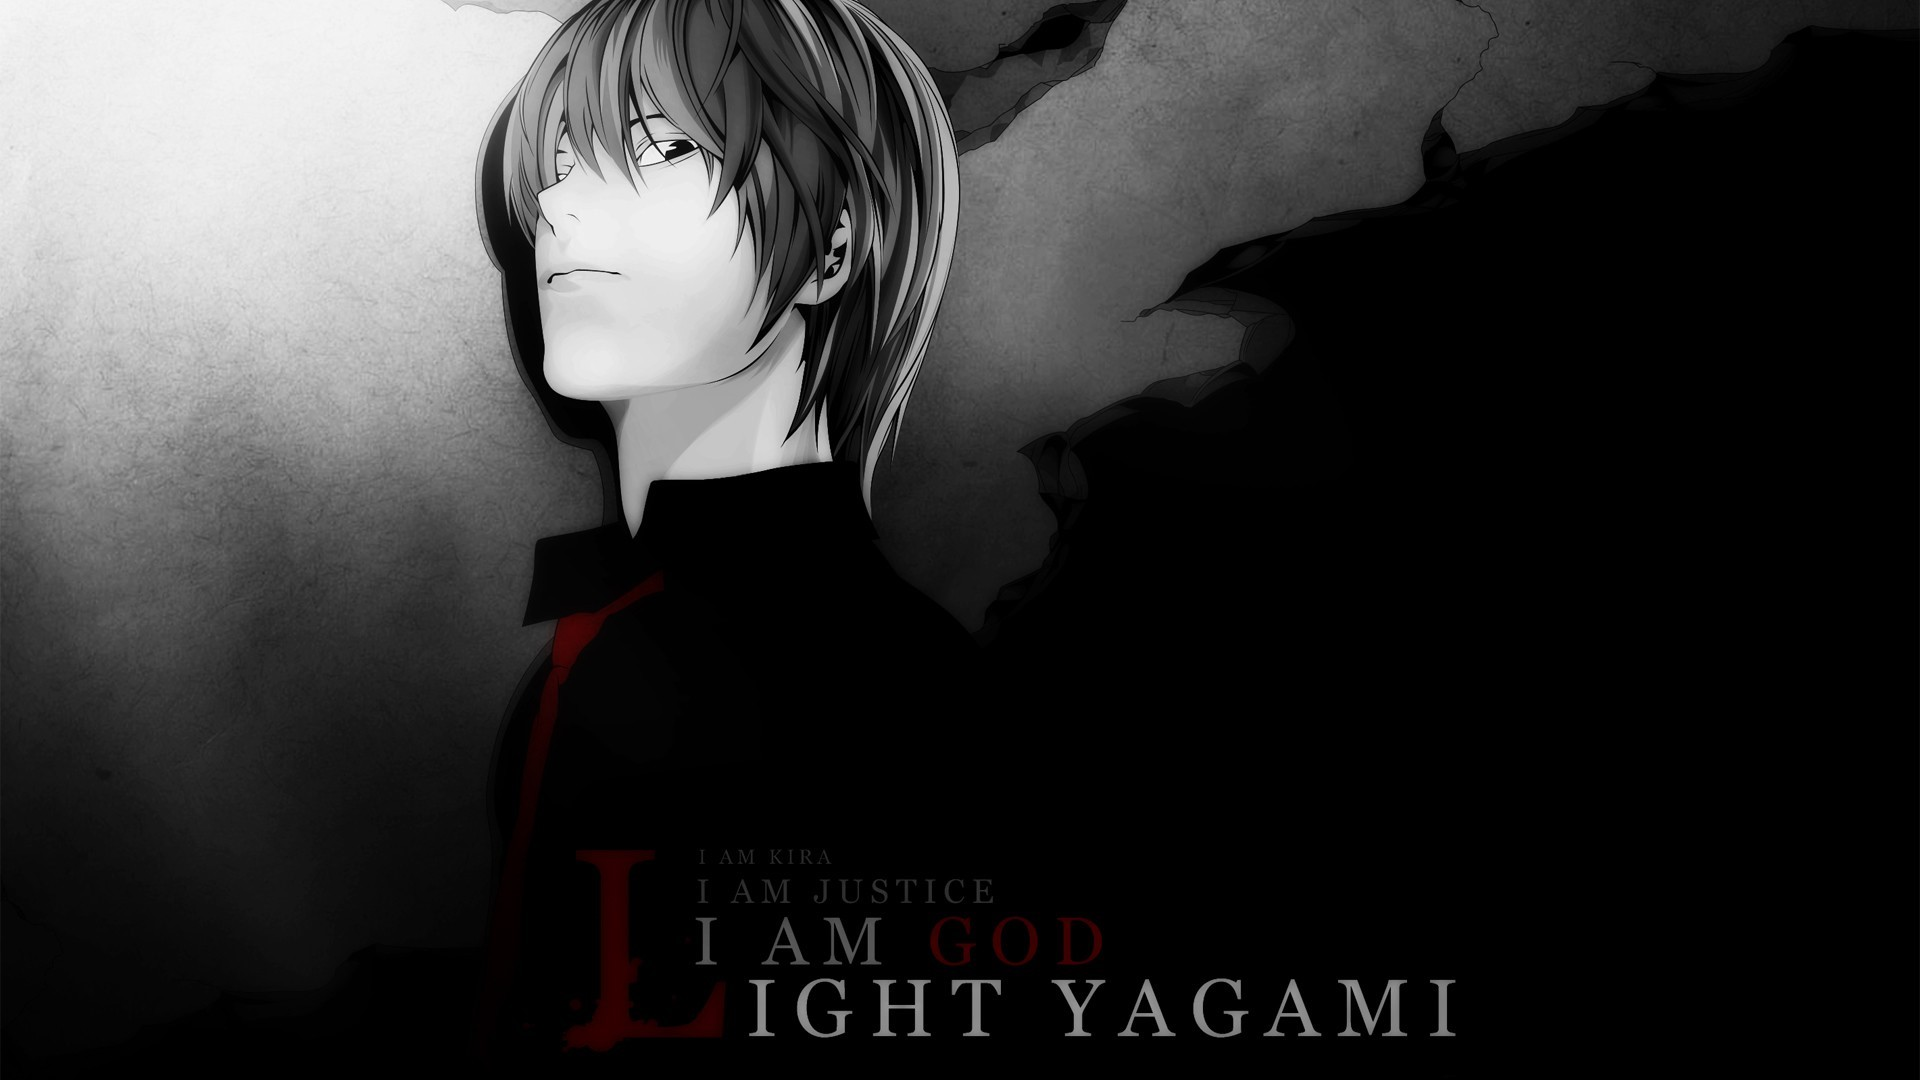 Anime Wallpaper Light Yagami from Death Note